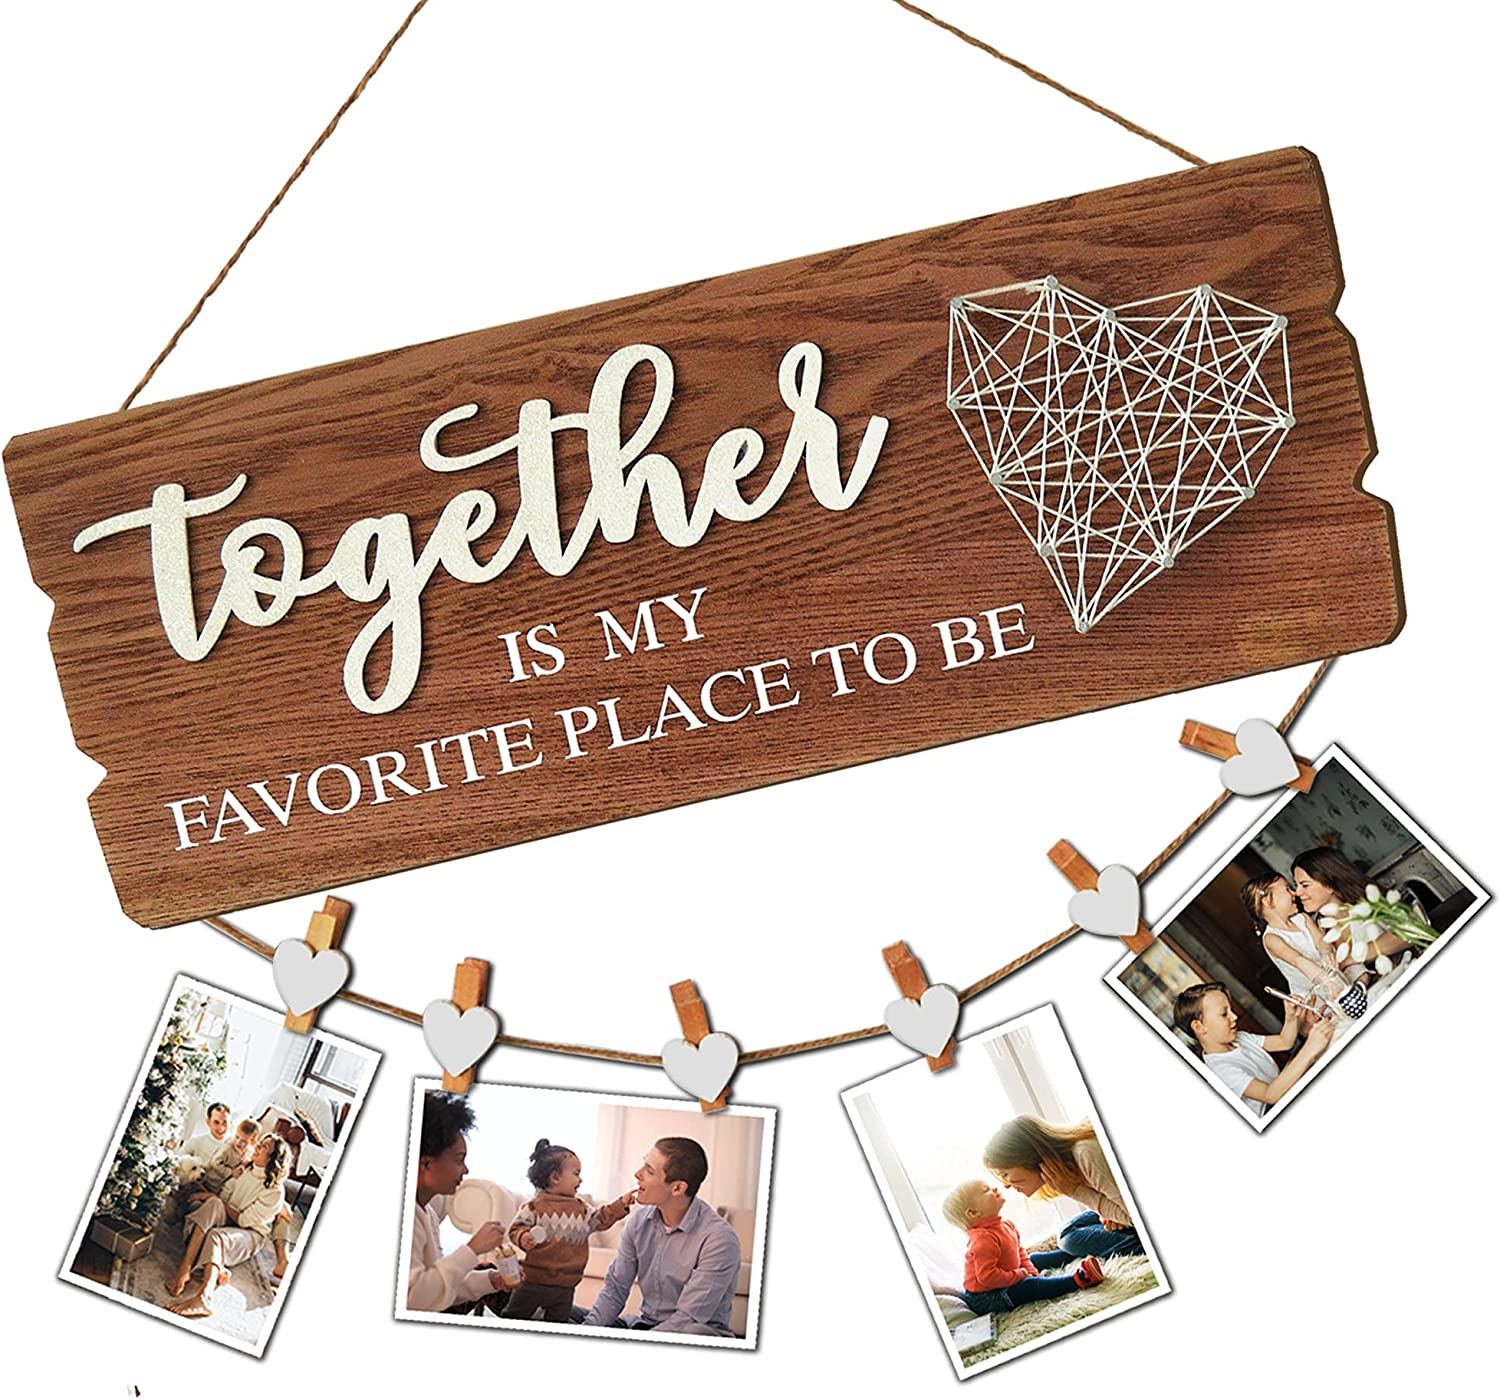 Buecasa Housewarming Gifts New Home Sign Decor - Family Wall Hanging Picture Frame with 6 Heart Clips- Together is My Favorite Place to Be 15.8x6.0 Inches